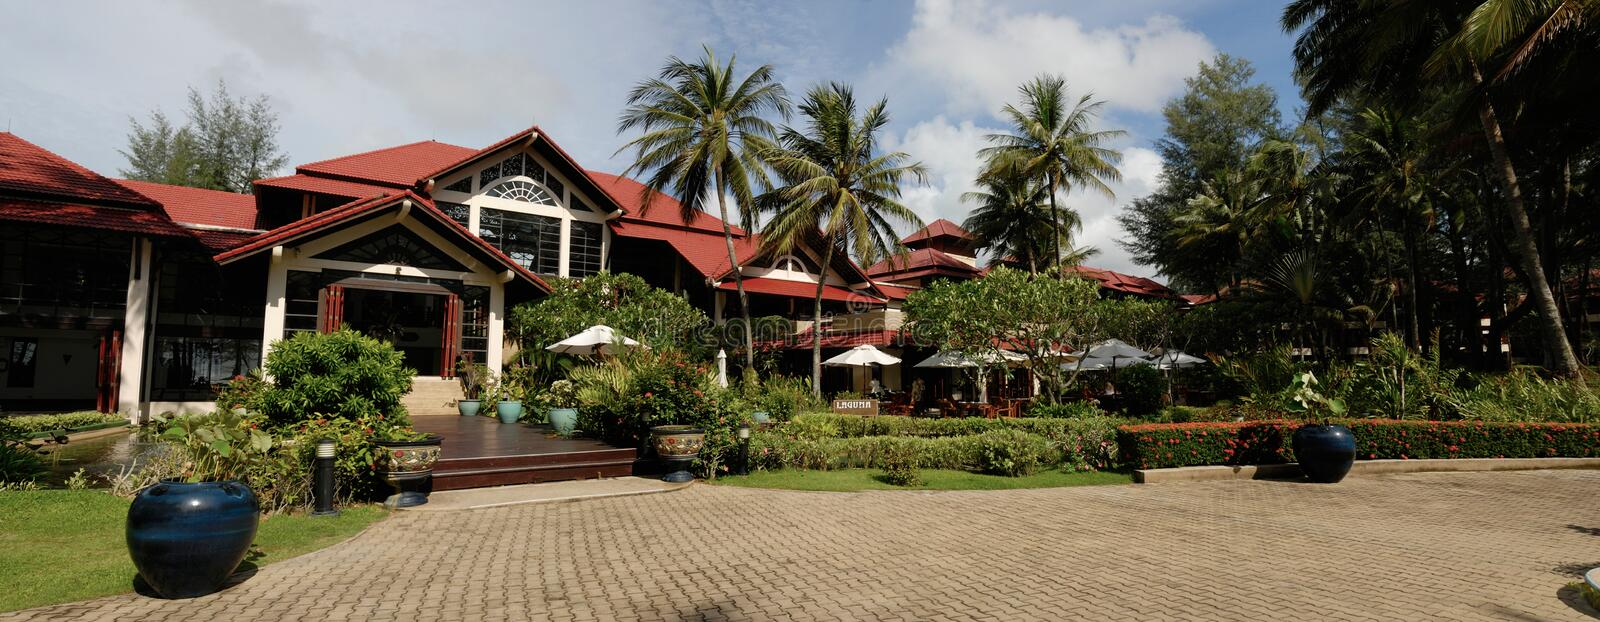 Download Hotel Poolside Thai Architecture Stock Image - Image: 21992059